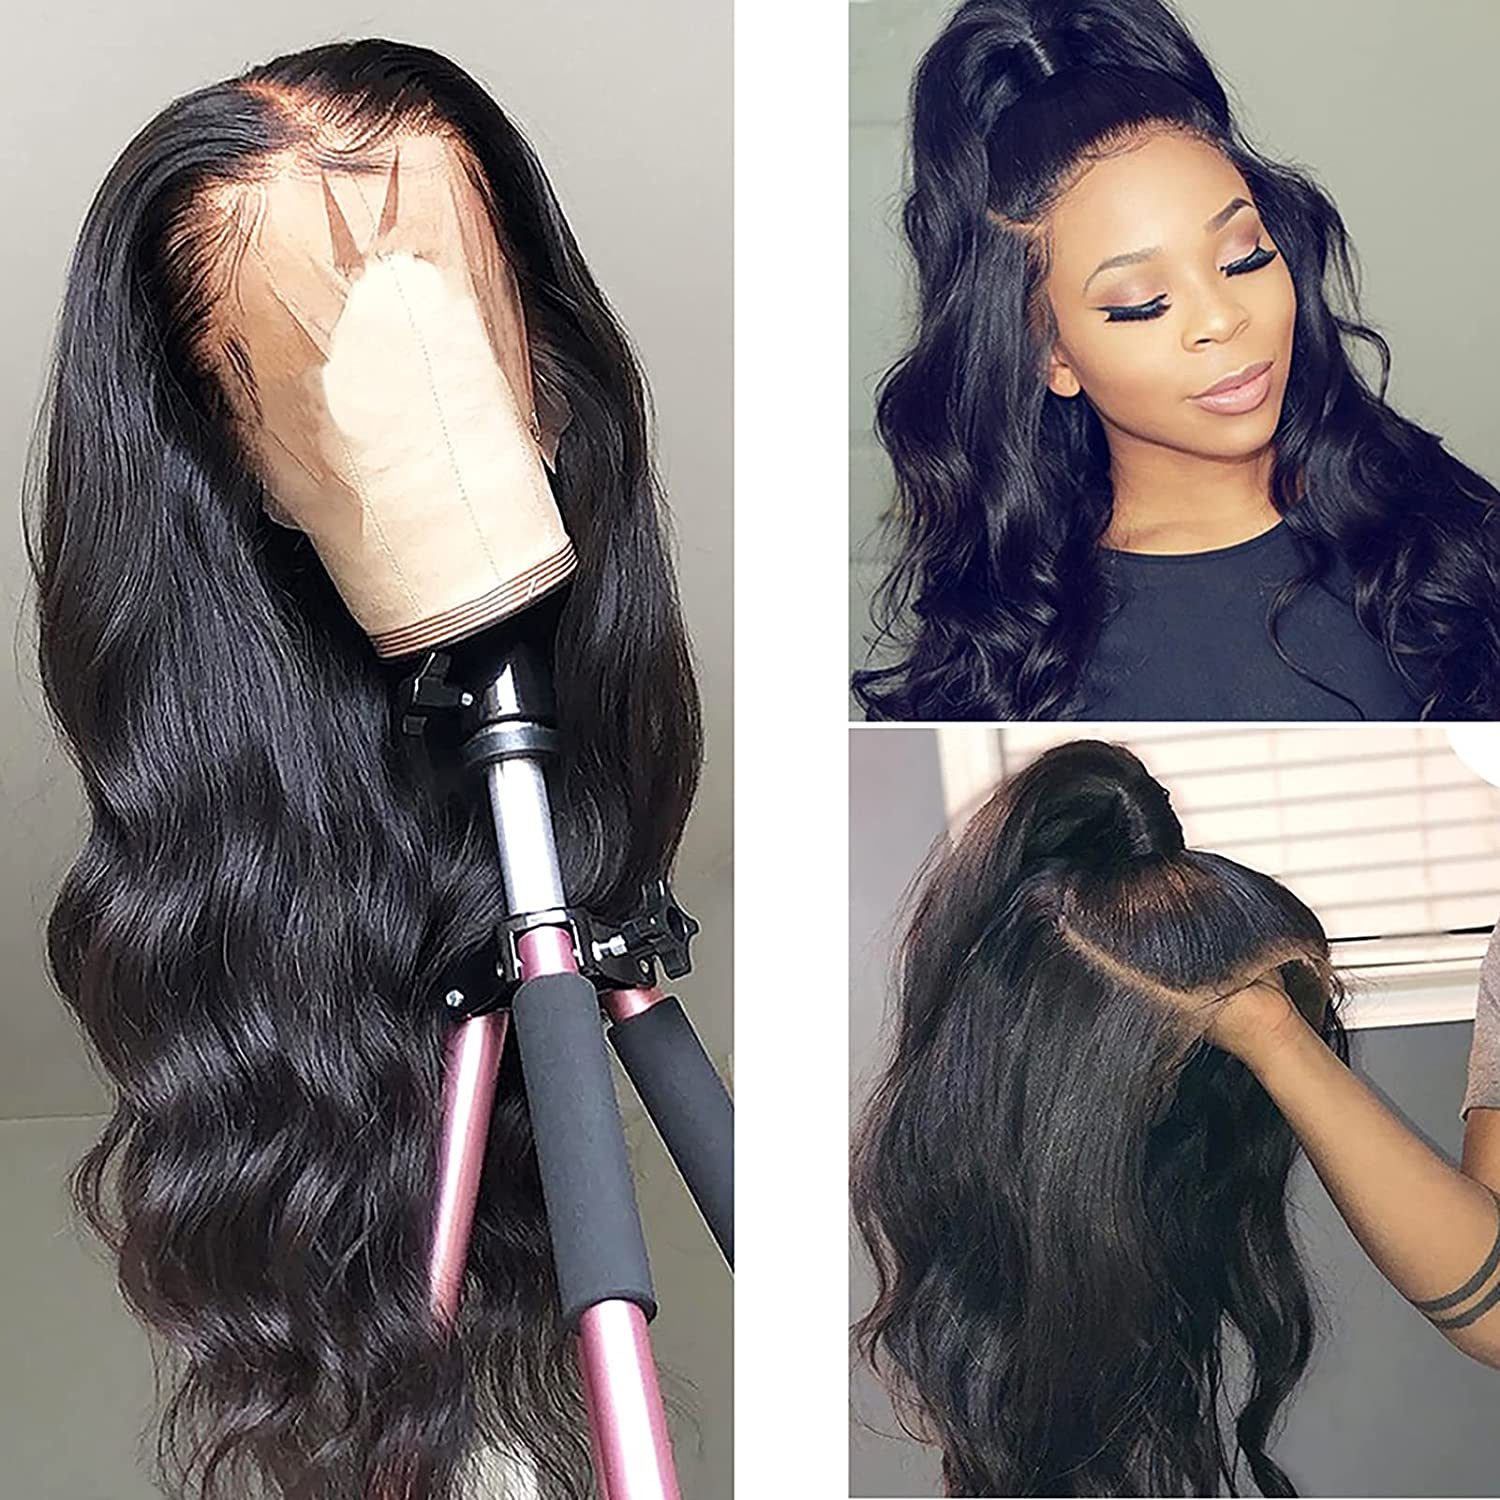 GETD Human Hair Wigs 360 Popular brand Frontal In stock Lace Plucked Brazilian Pre